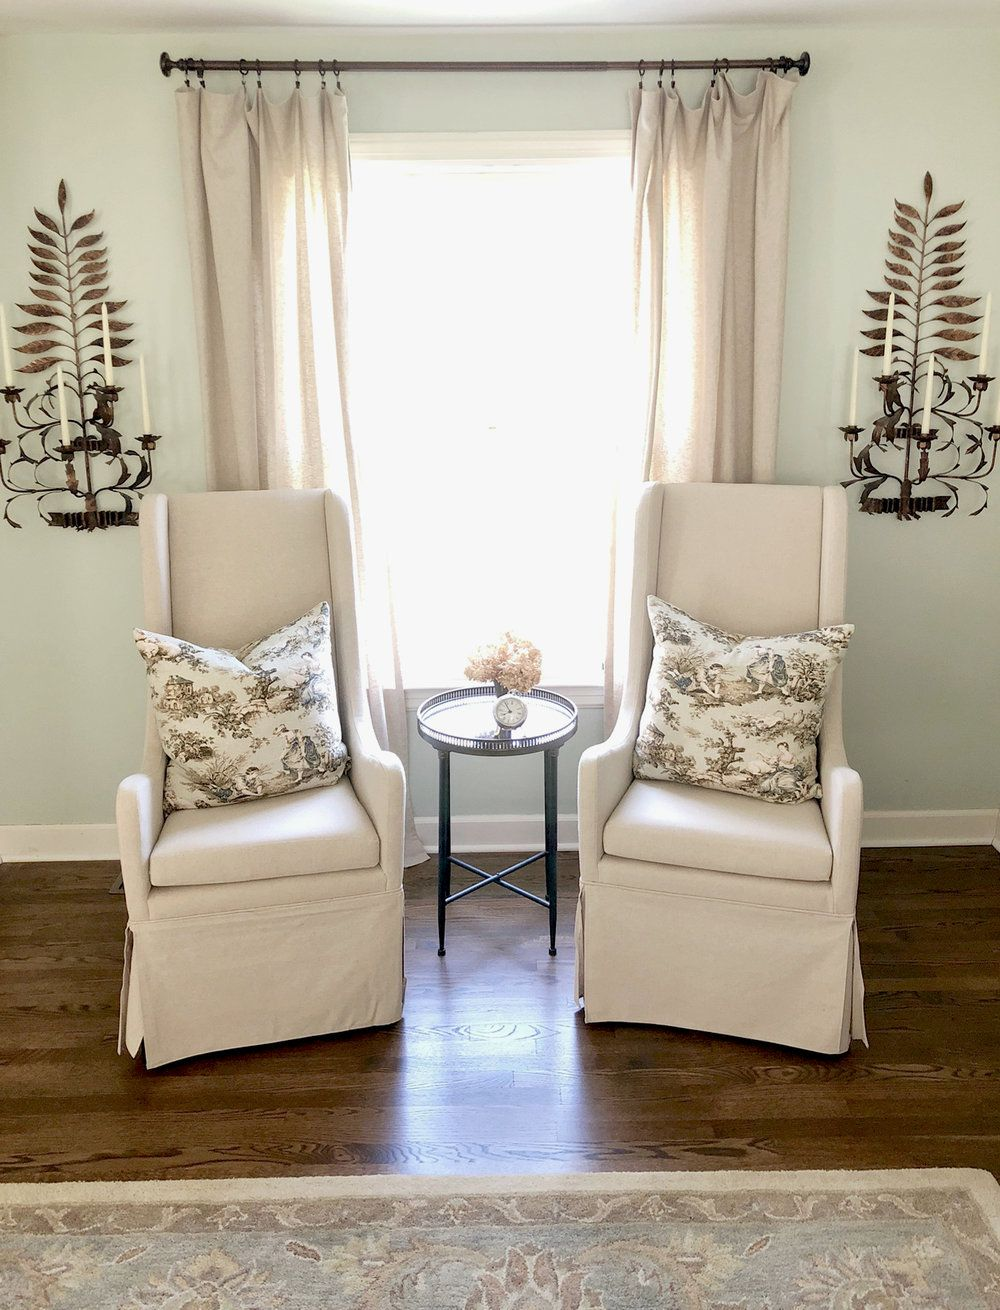 Seating Arrangment In Window French Country Master Bedroom Beth Hart Designs